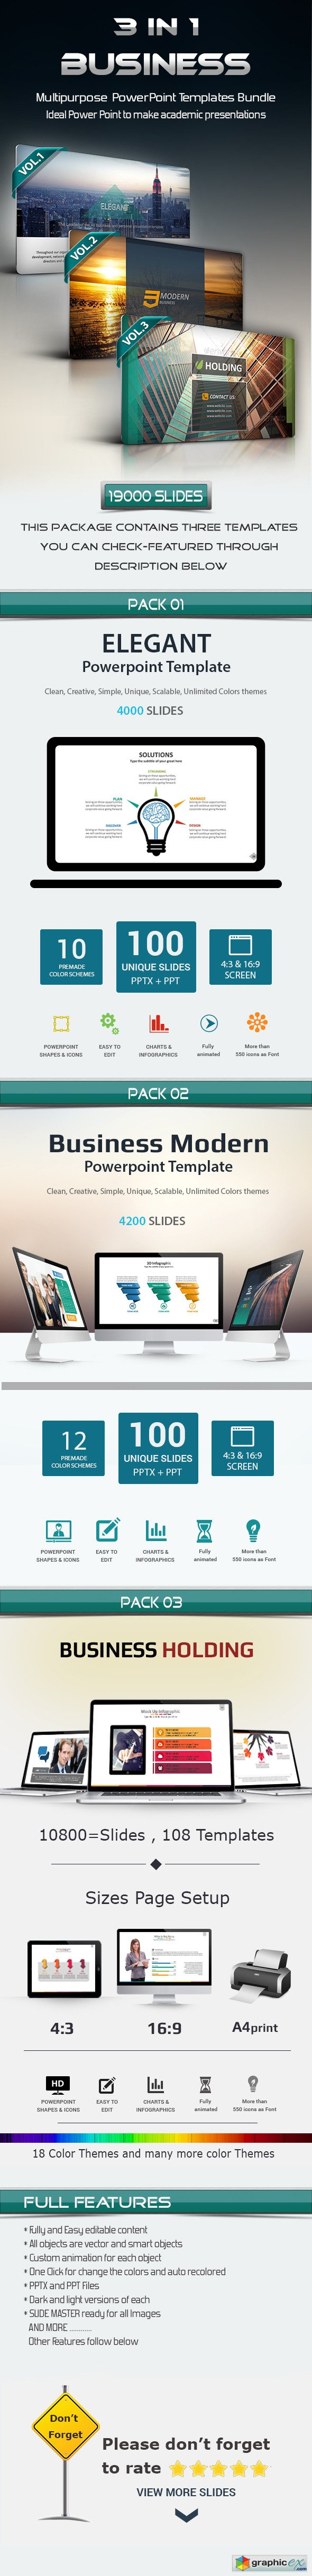 3 In 1 Business Powerpoint Template Bundle Free Download